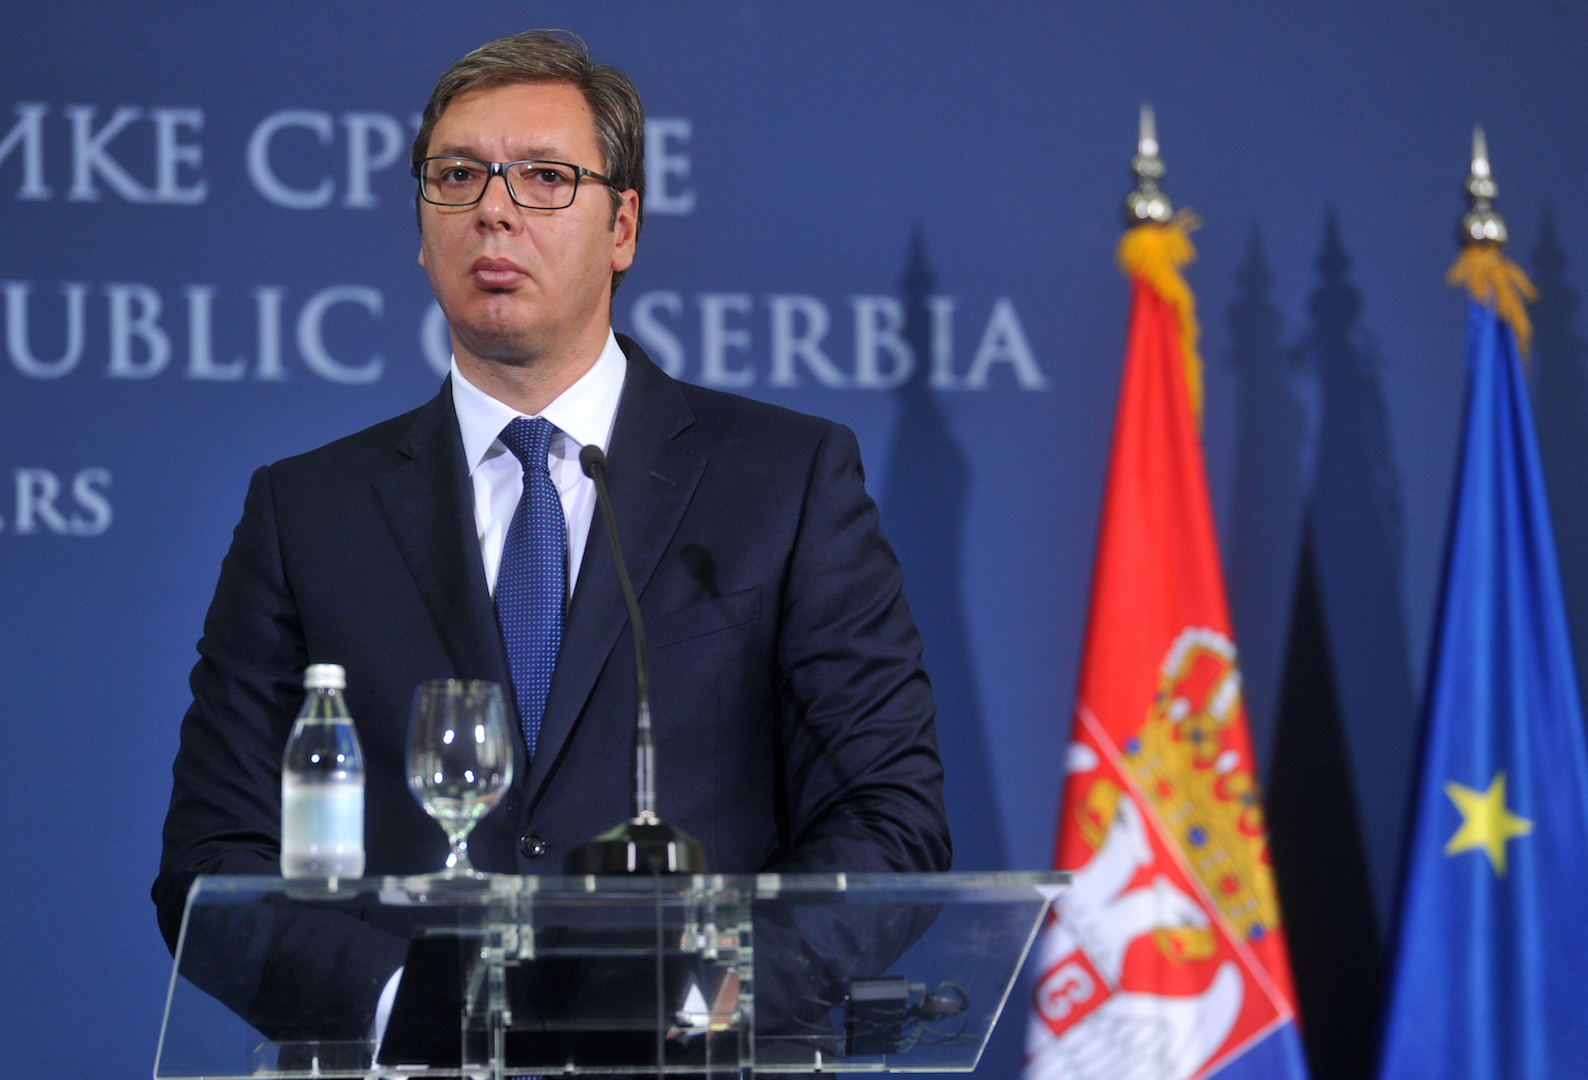 Vucic: Elections will be held either on 26 April or 3 May